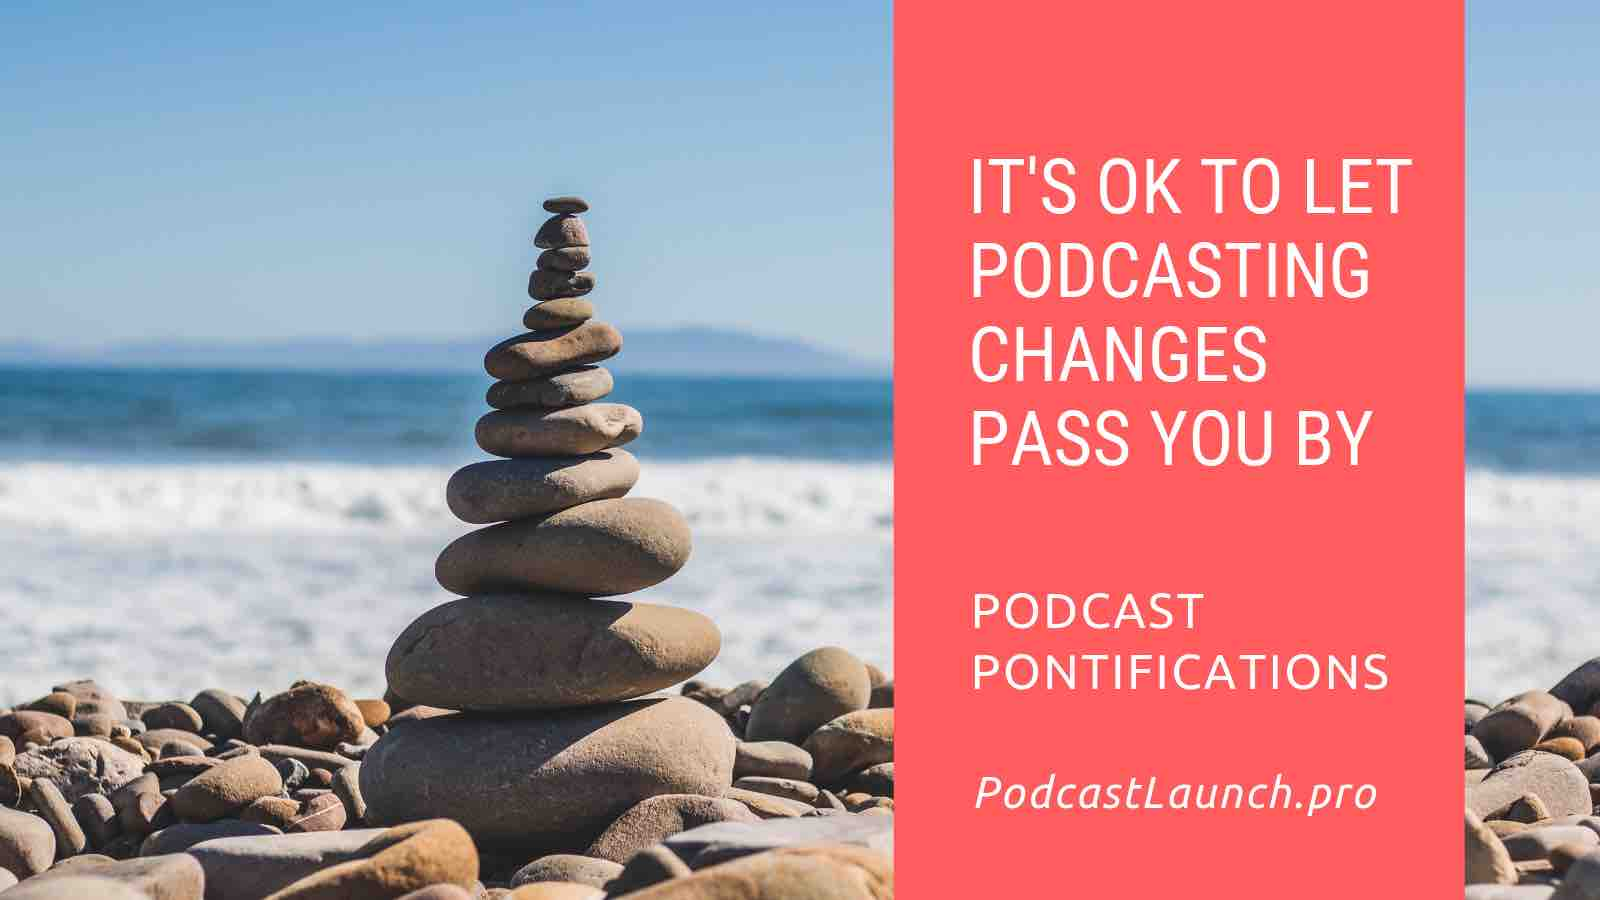 It's OK To Let Podcasting Changes Pass You By... For Now